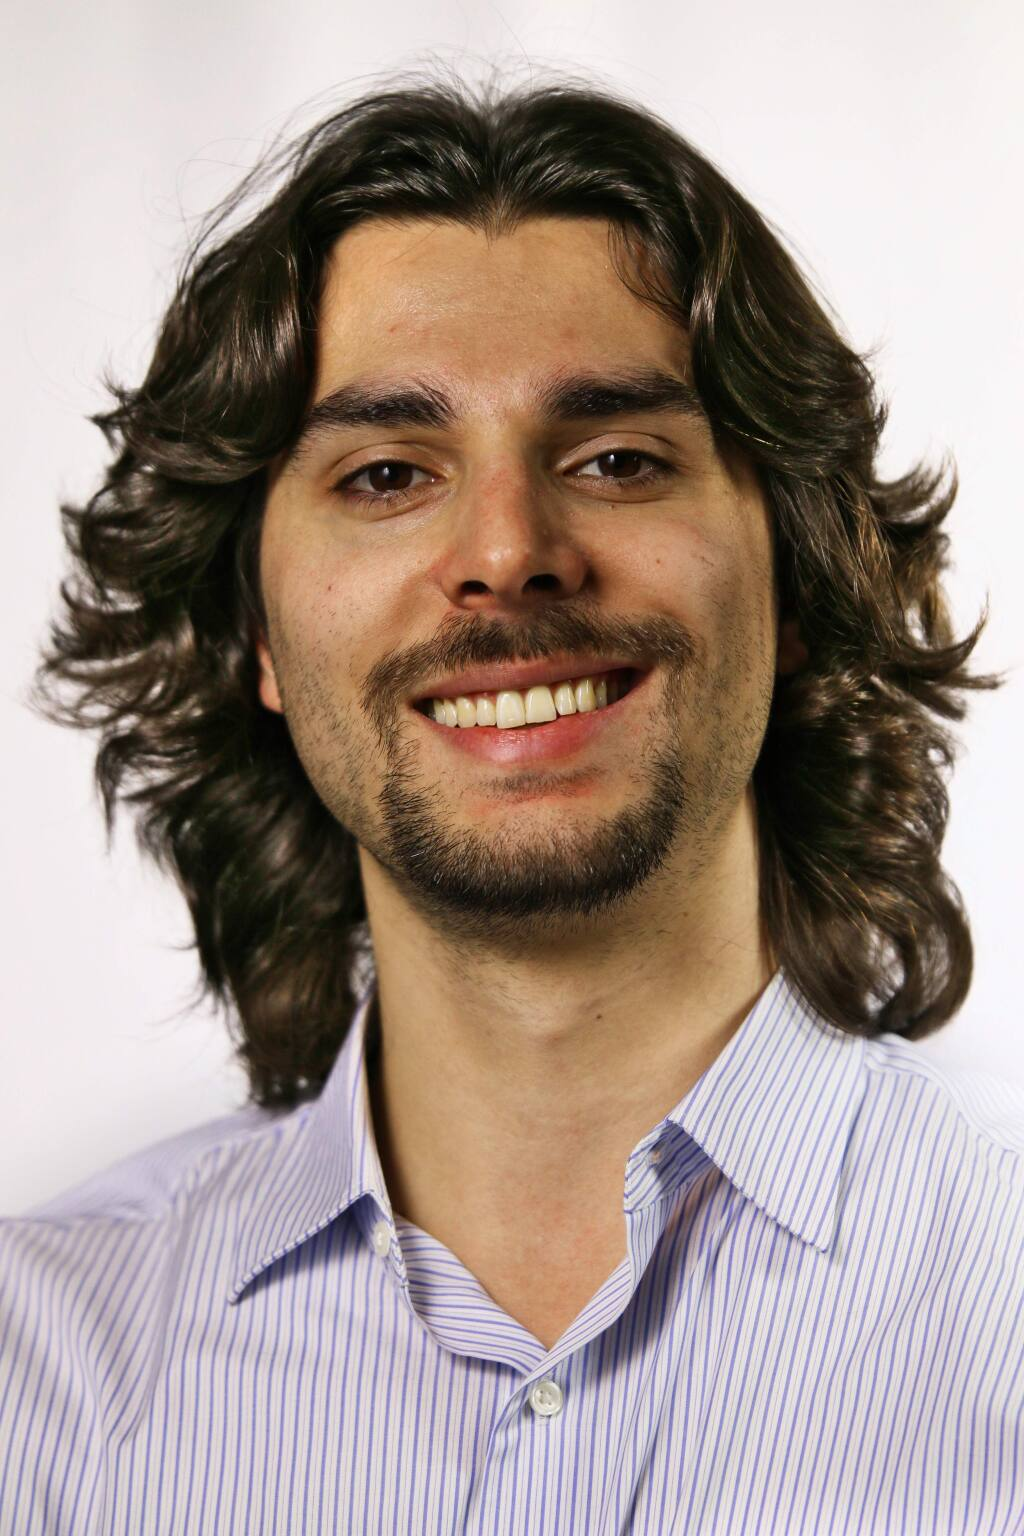 North Bay Business Journal staff writer Chase DiFeliciantonio covers banking, financial services, law, cannabis and other industries. (JEFF QUACKENBUSH / NORTH BAY BUSINESS JOURNAL) Feb. 4, 2019